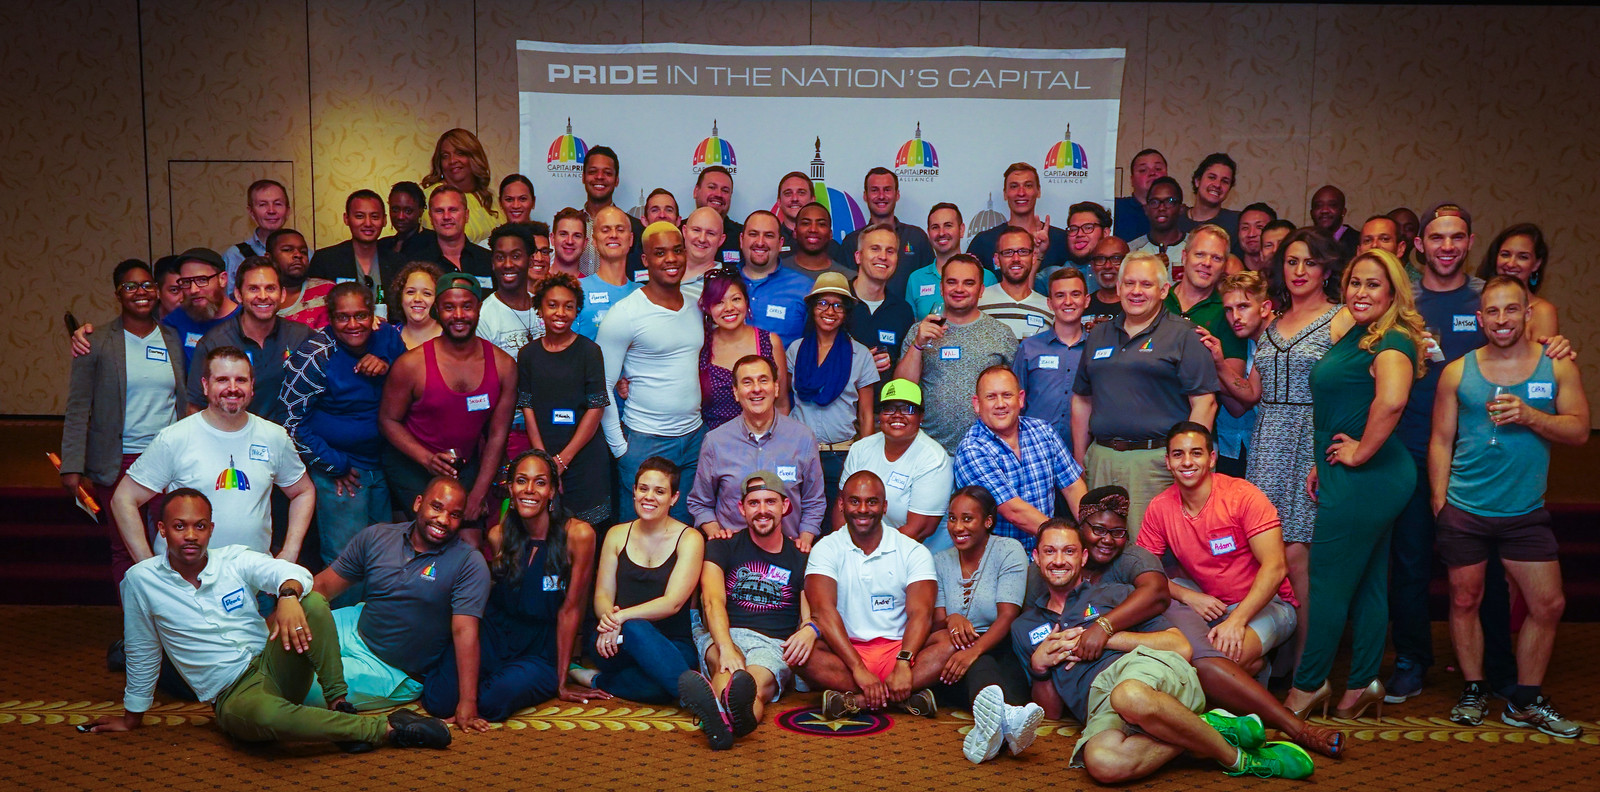 2016.07.28 Capital Pride Volunteer Appreciation Washington DC USA 07-5